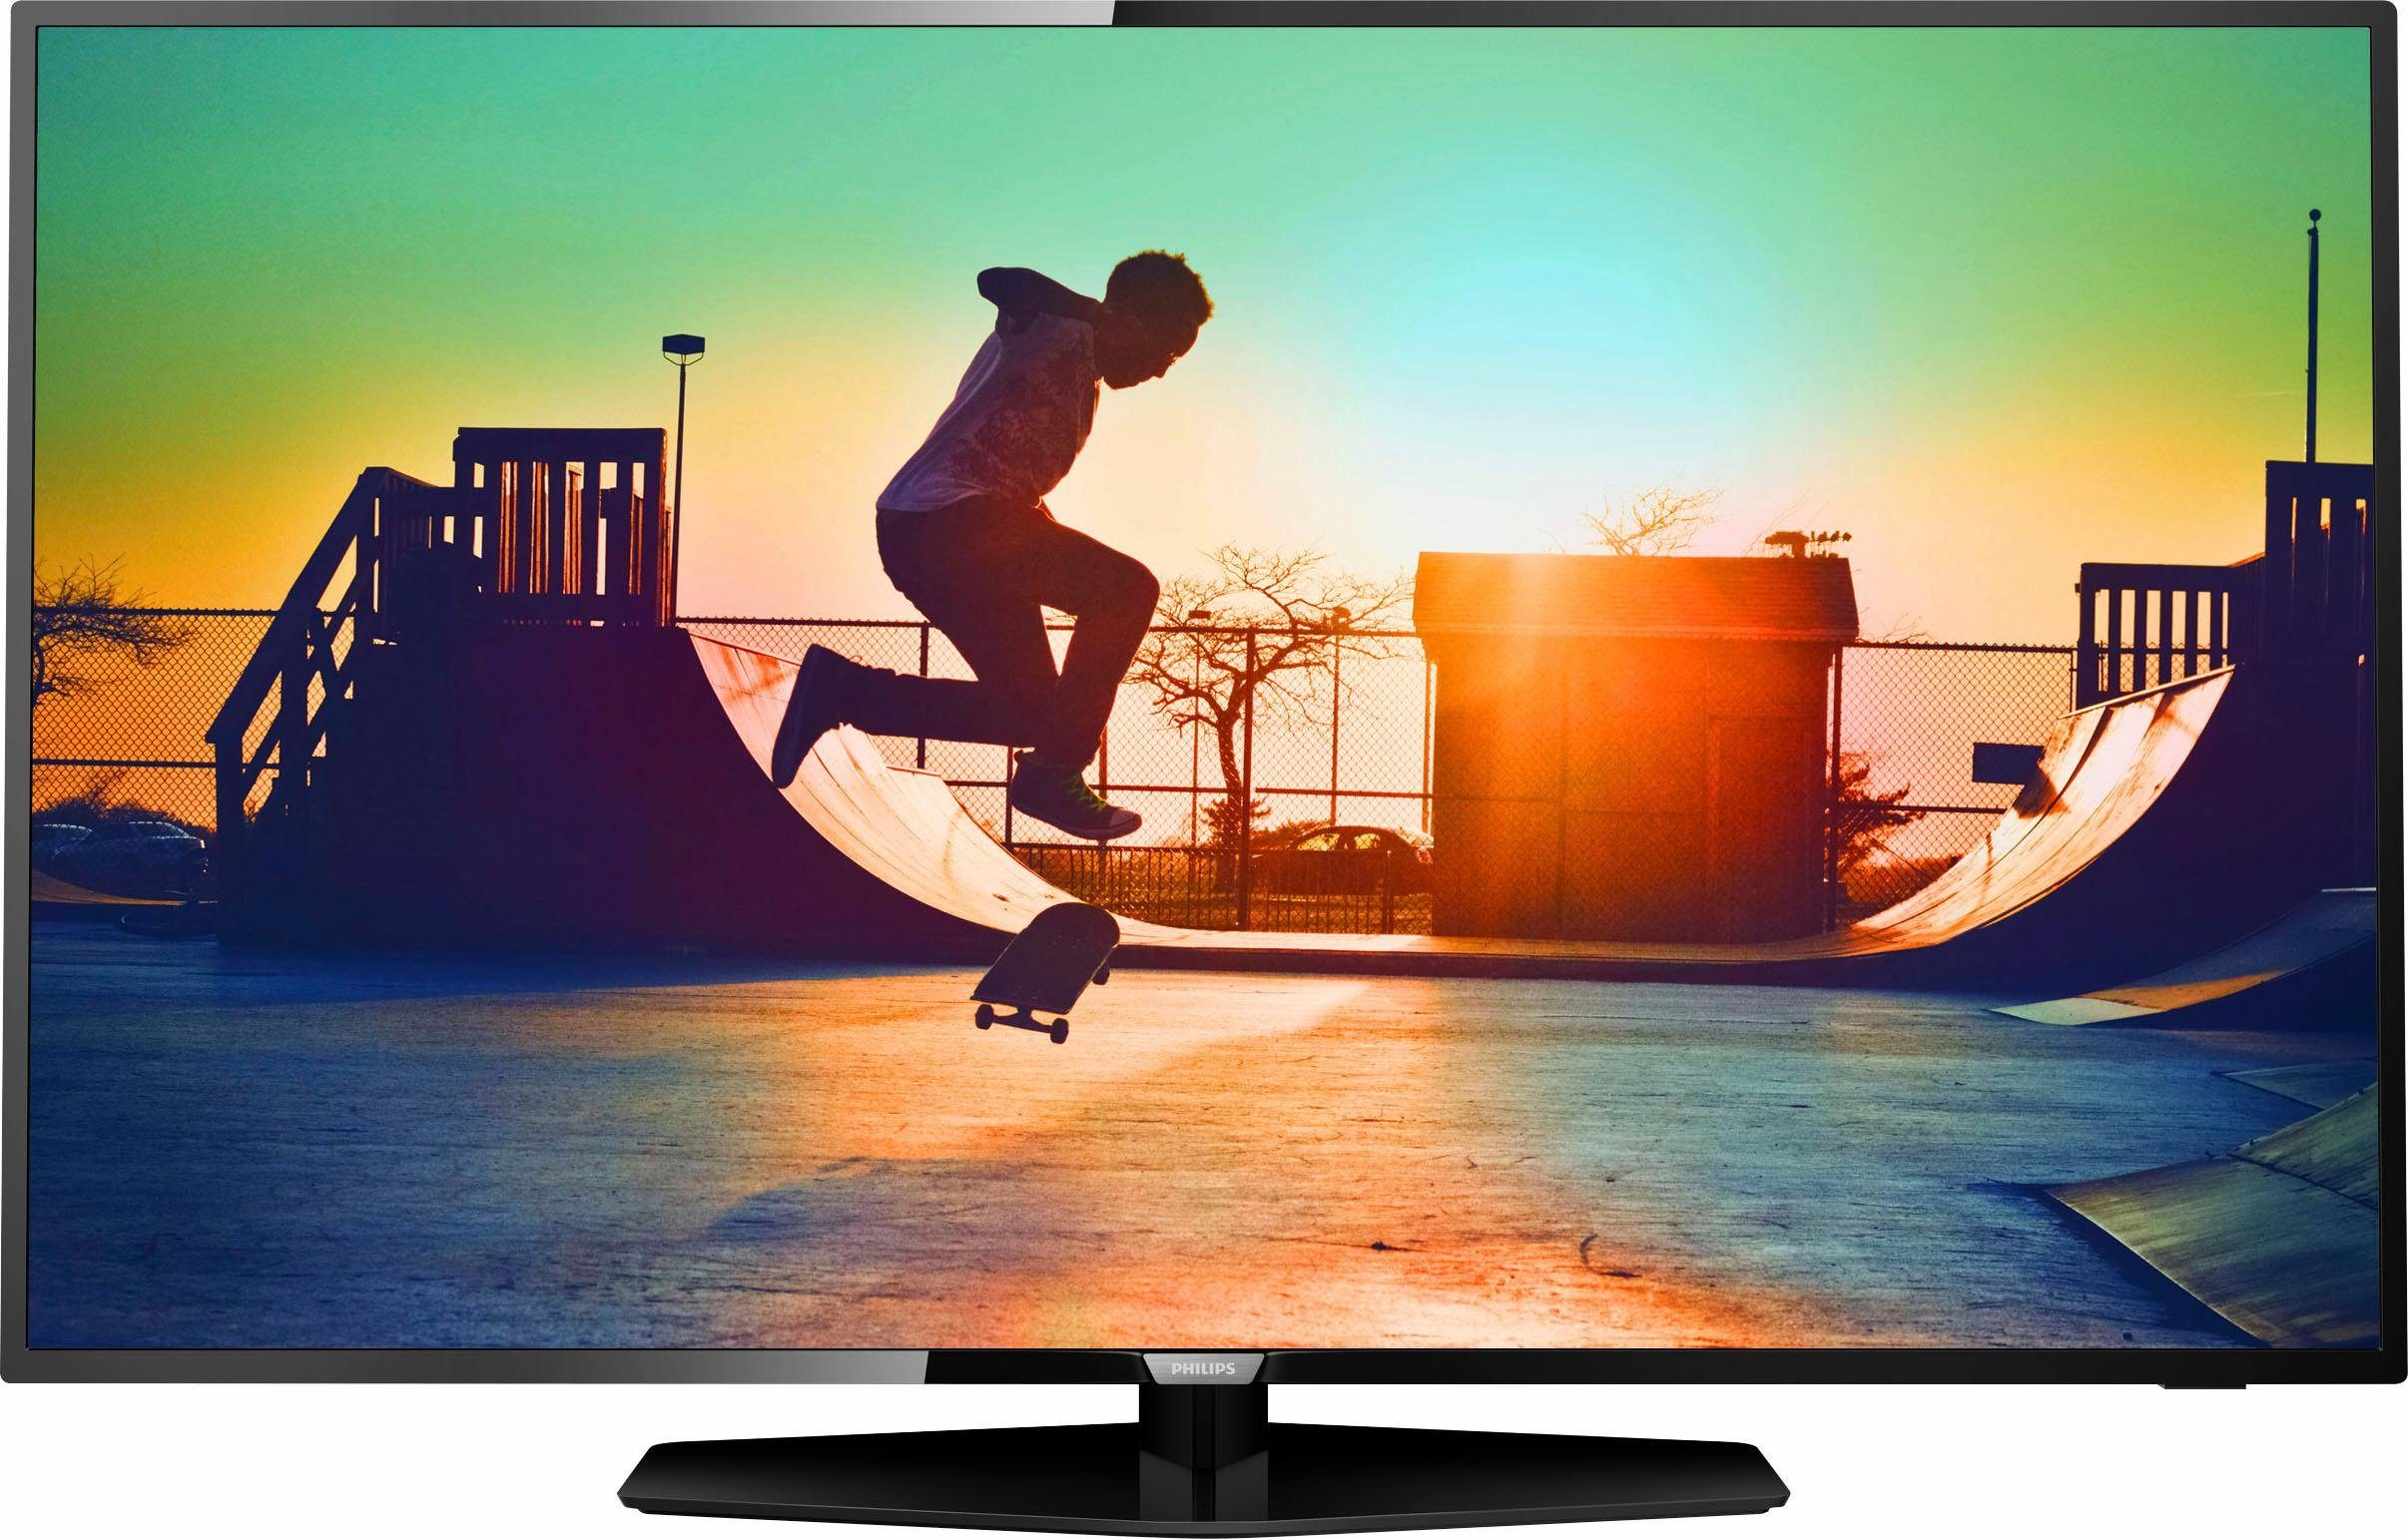 Philips 55PUS6162 LED-Fernseher (139 cm/55 Zoll, 4K Ultra HD, Smart-TV, 36 Monate Garantie)